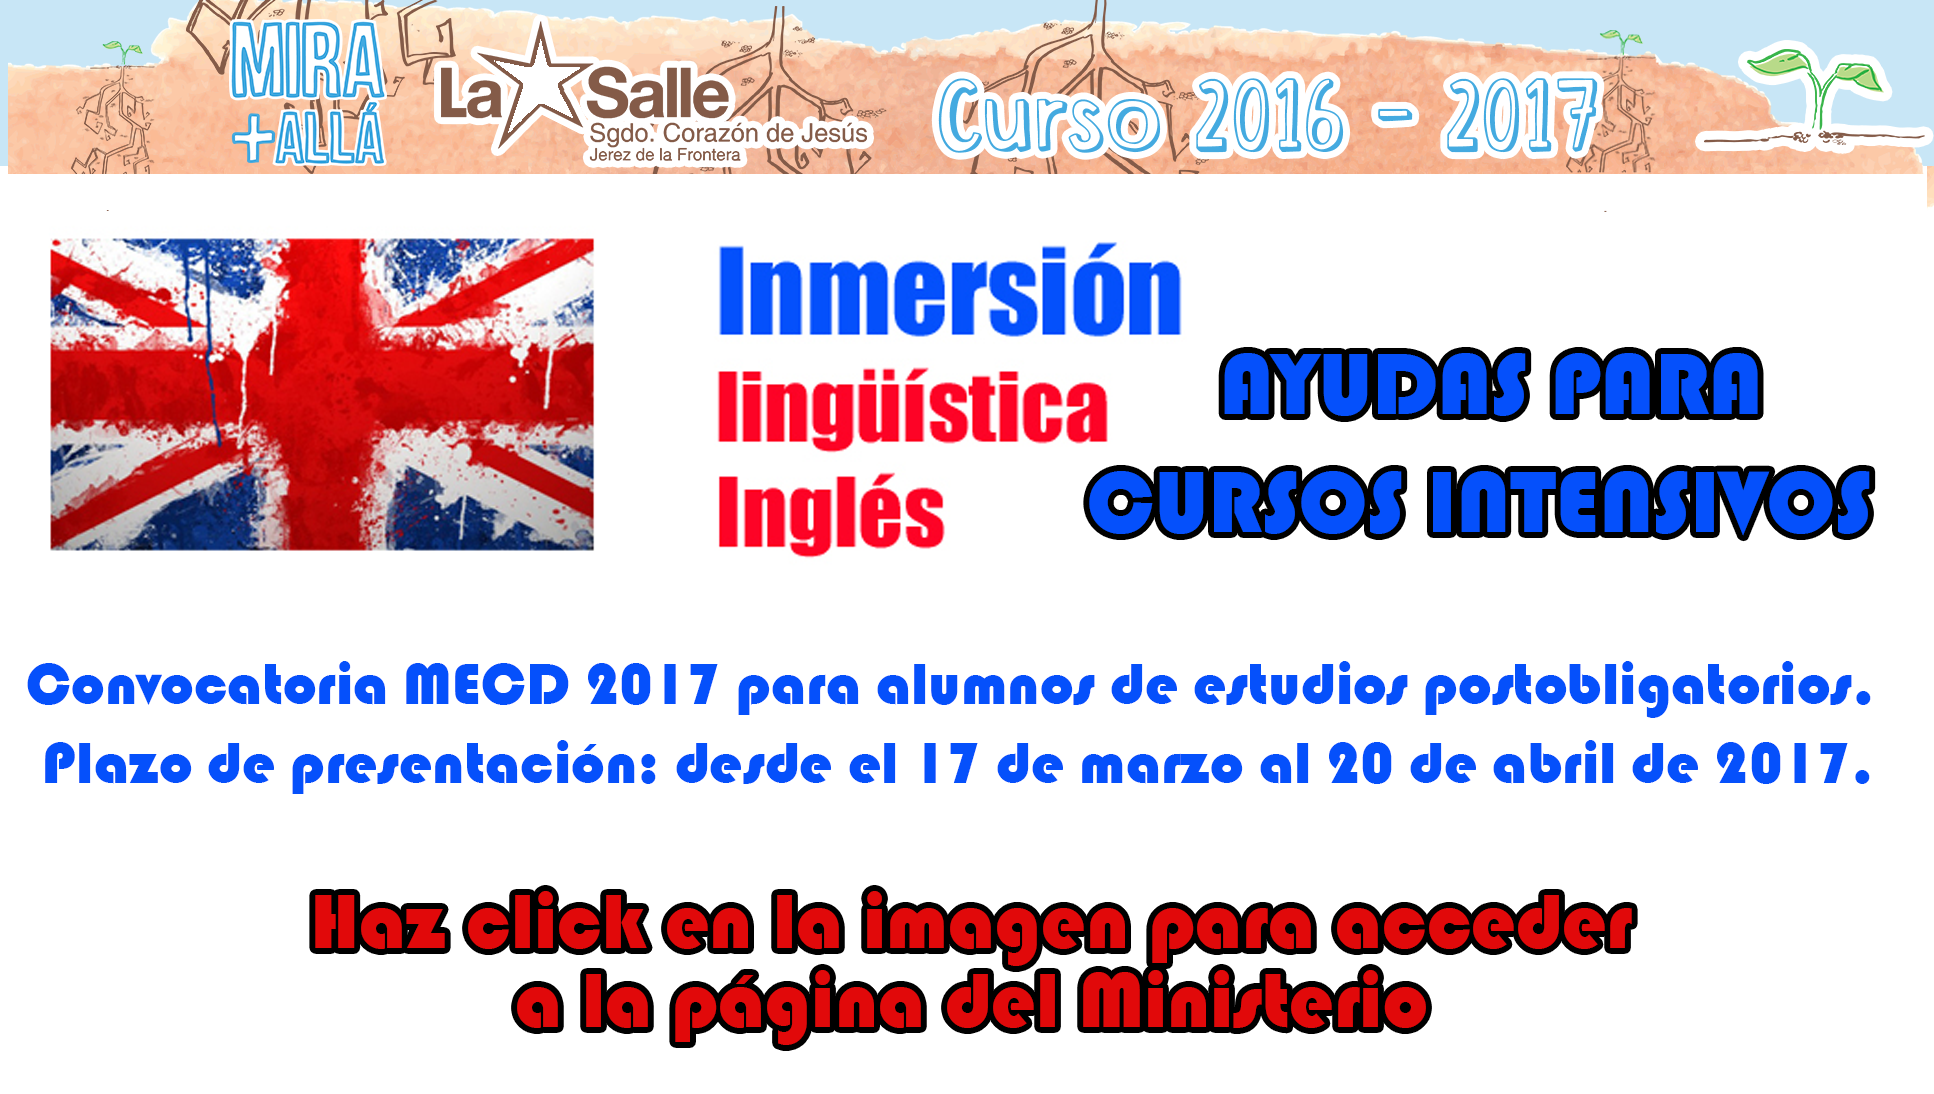 inmersion%20linguistica.png